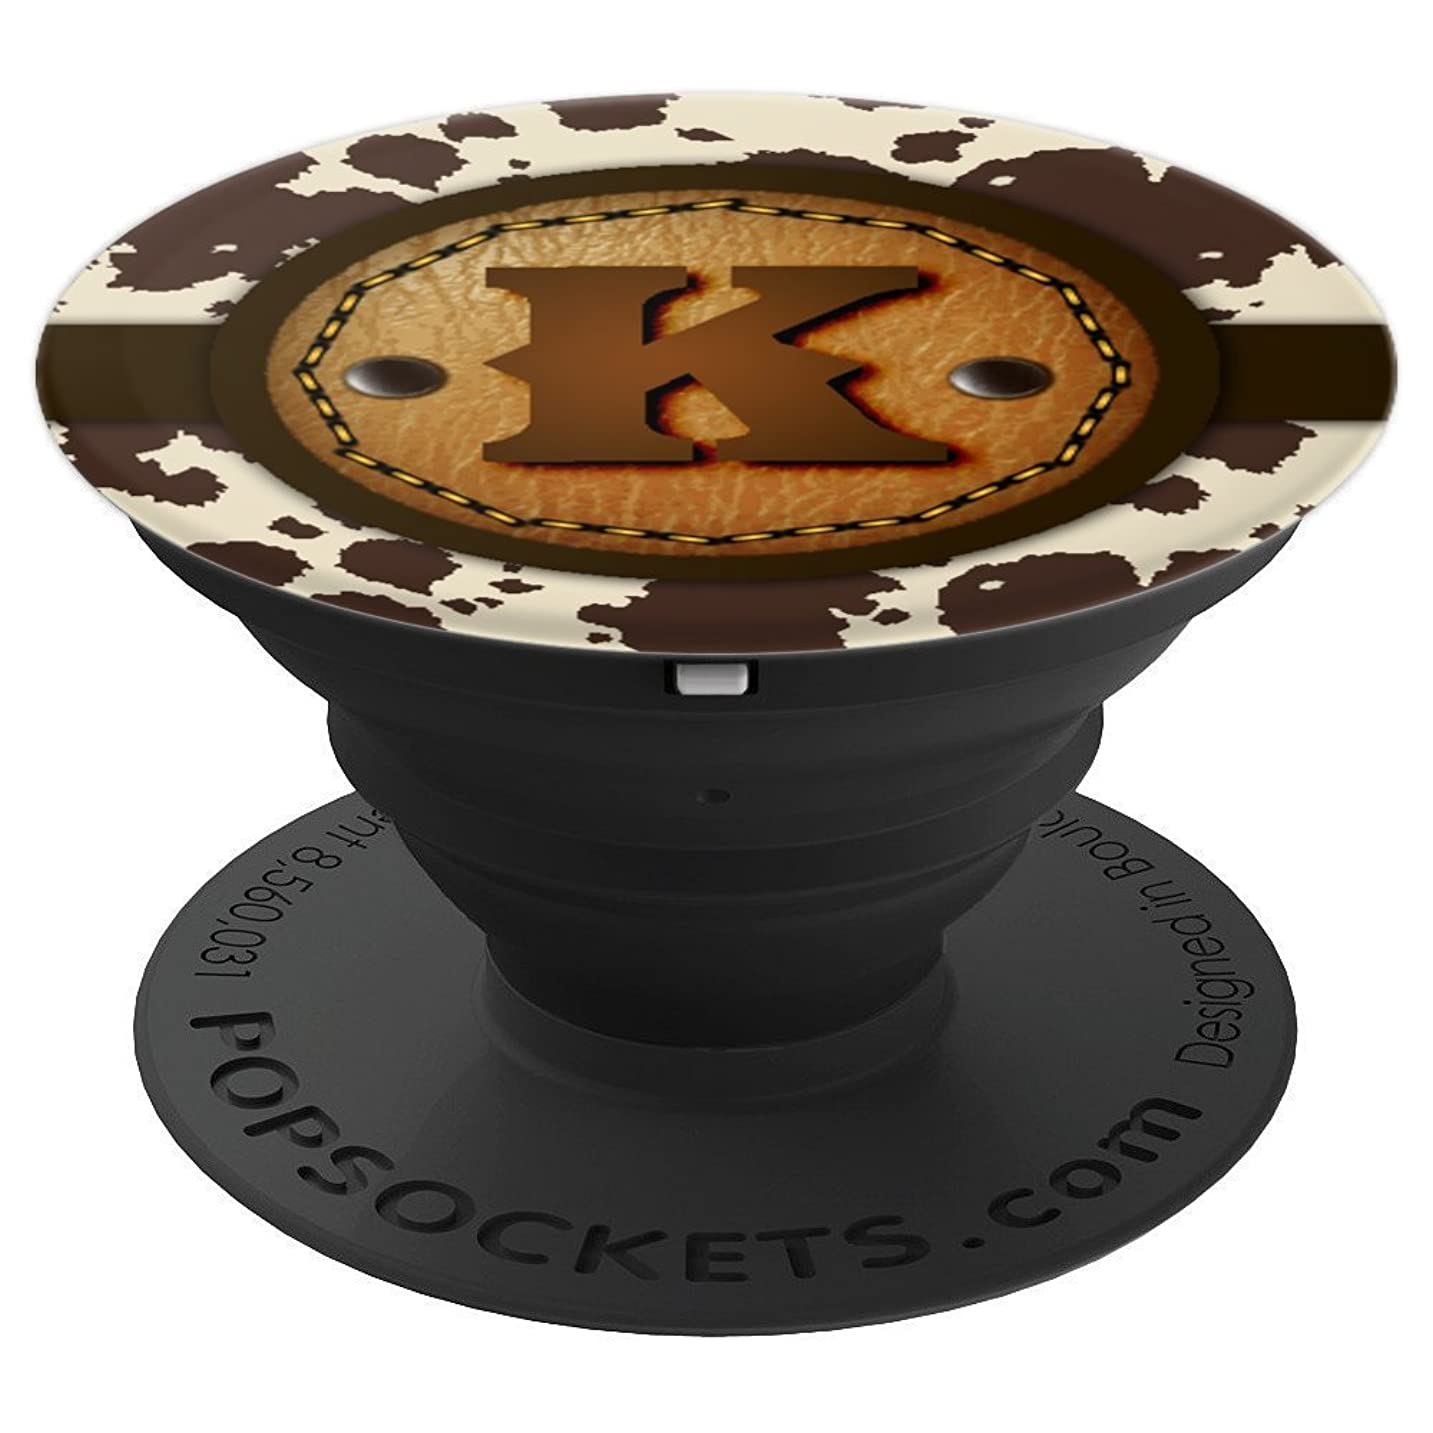 Brown Cowhide Western Leather Print Monogram - Letter K - PopSockets Grip and Stand for Phones and Tablets grkydyt787